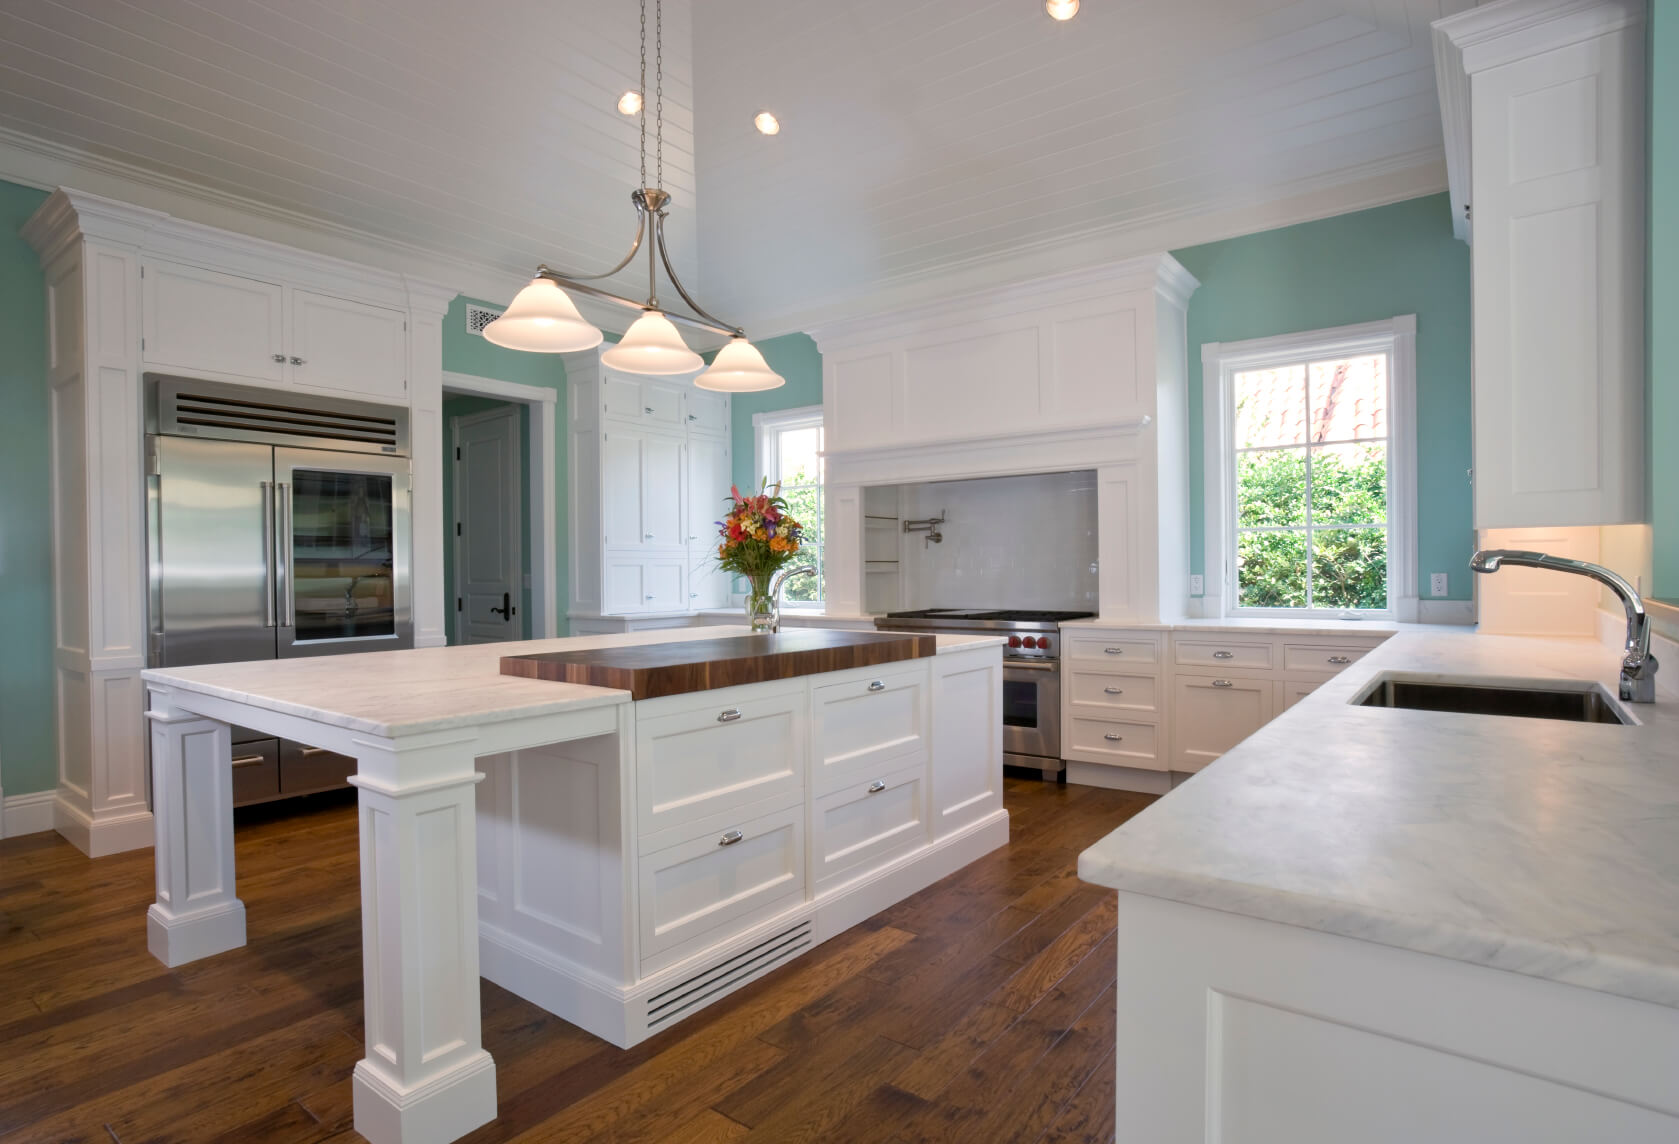 Kitchen Paint Colors With Blue Countertops - Best Kitchen Design ...